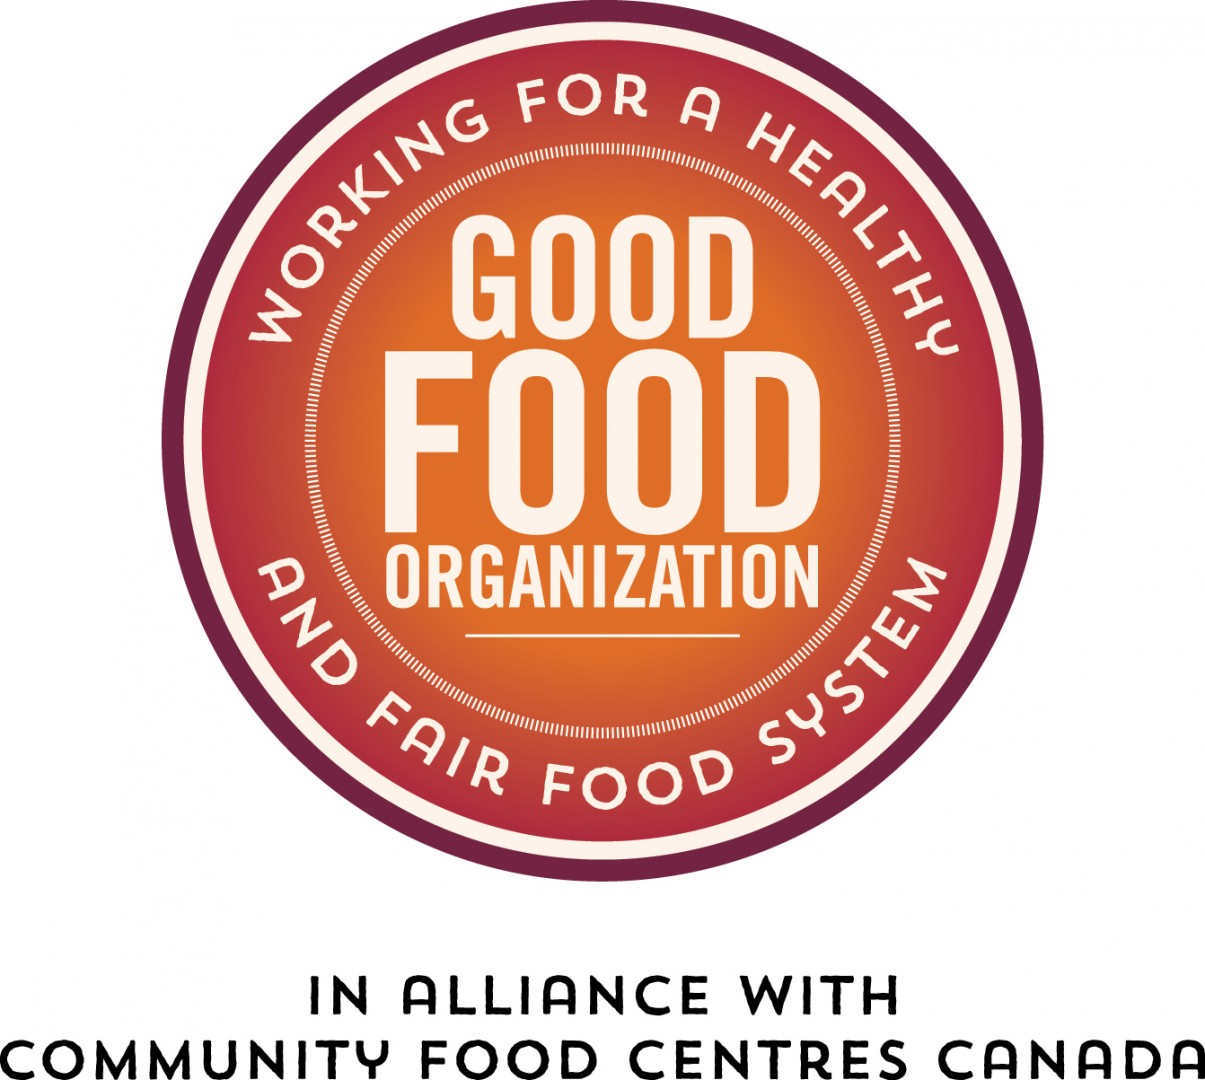 Interfaith food bank society of lethbridge for Organisation cuisine